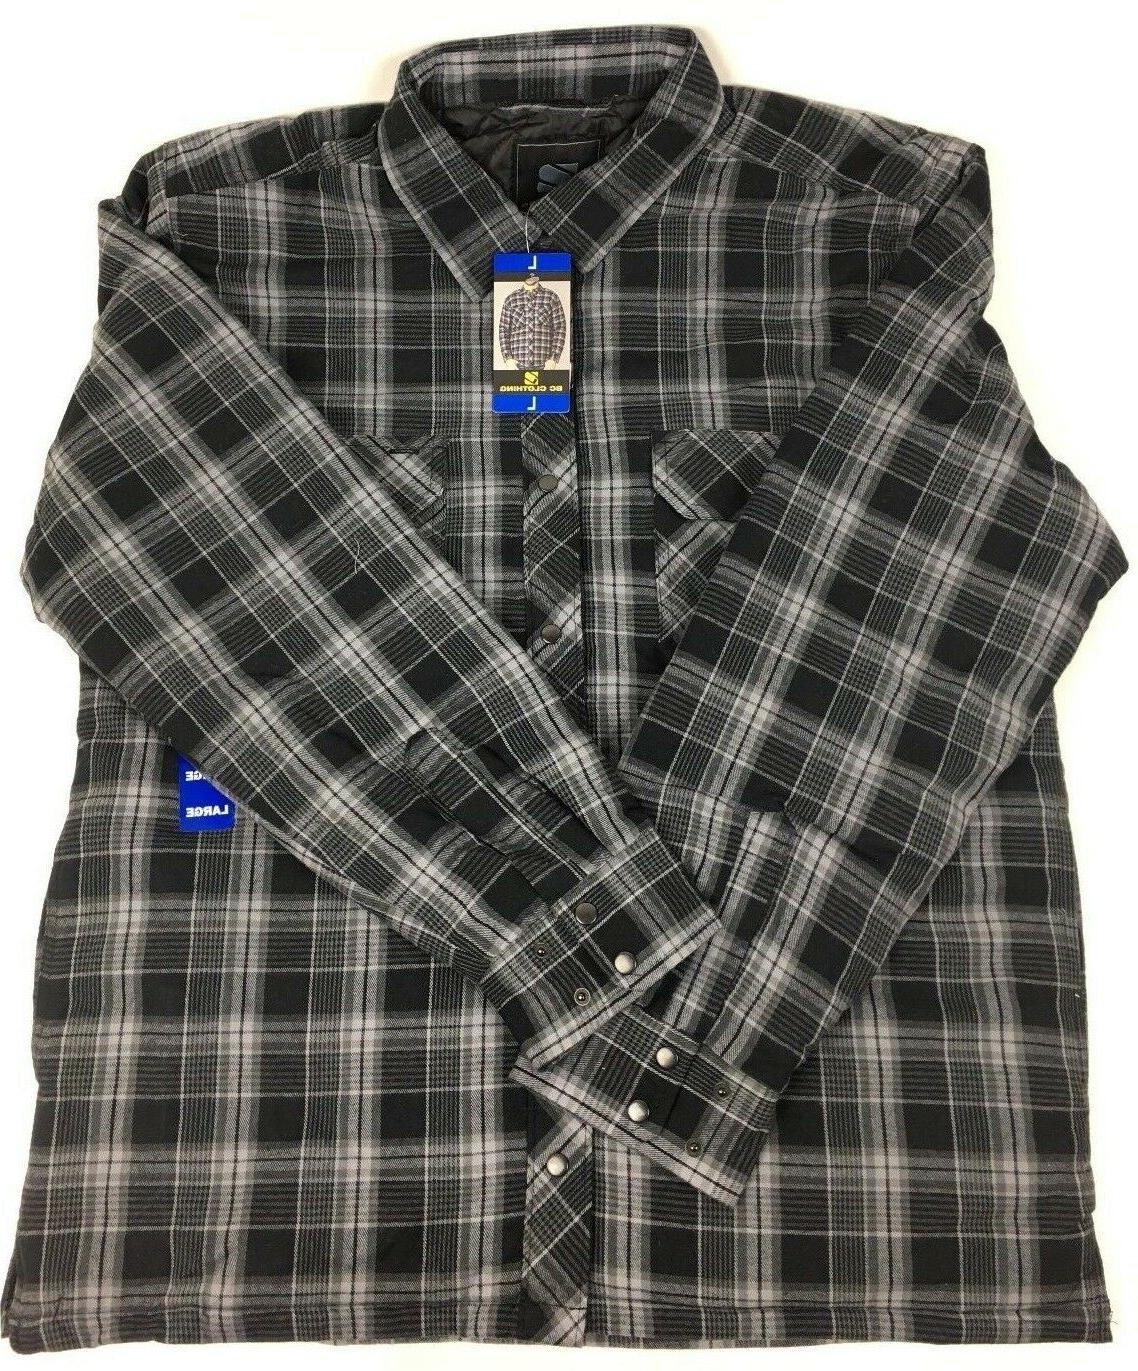 NEW Men's Clothing Quilted Shirt Jacket GREY PLAID Snap Cotton Shell L